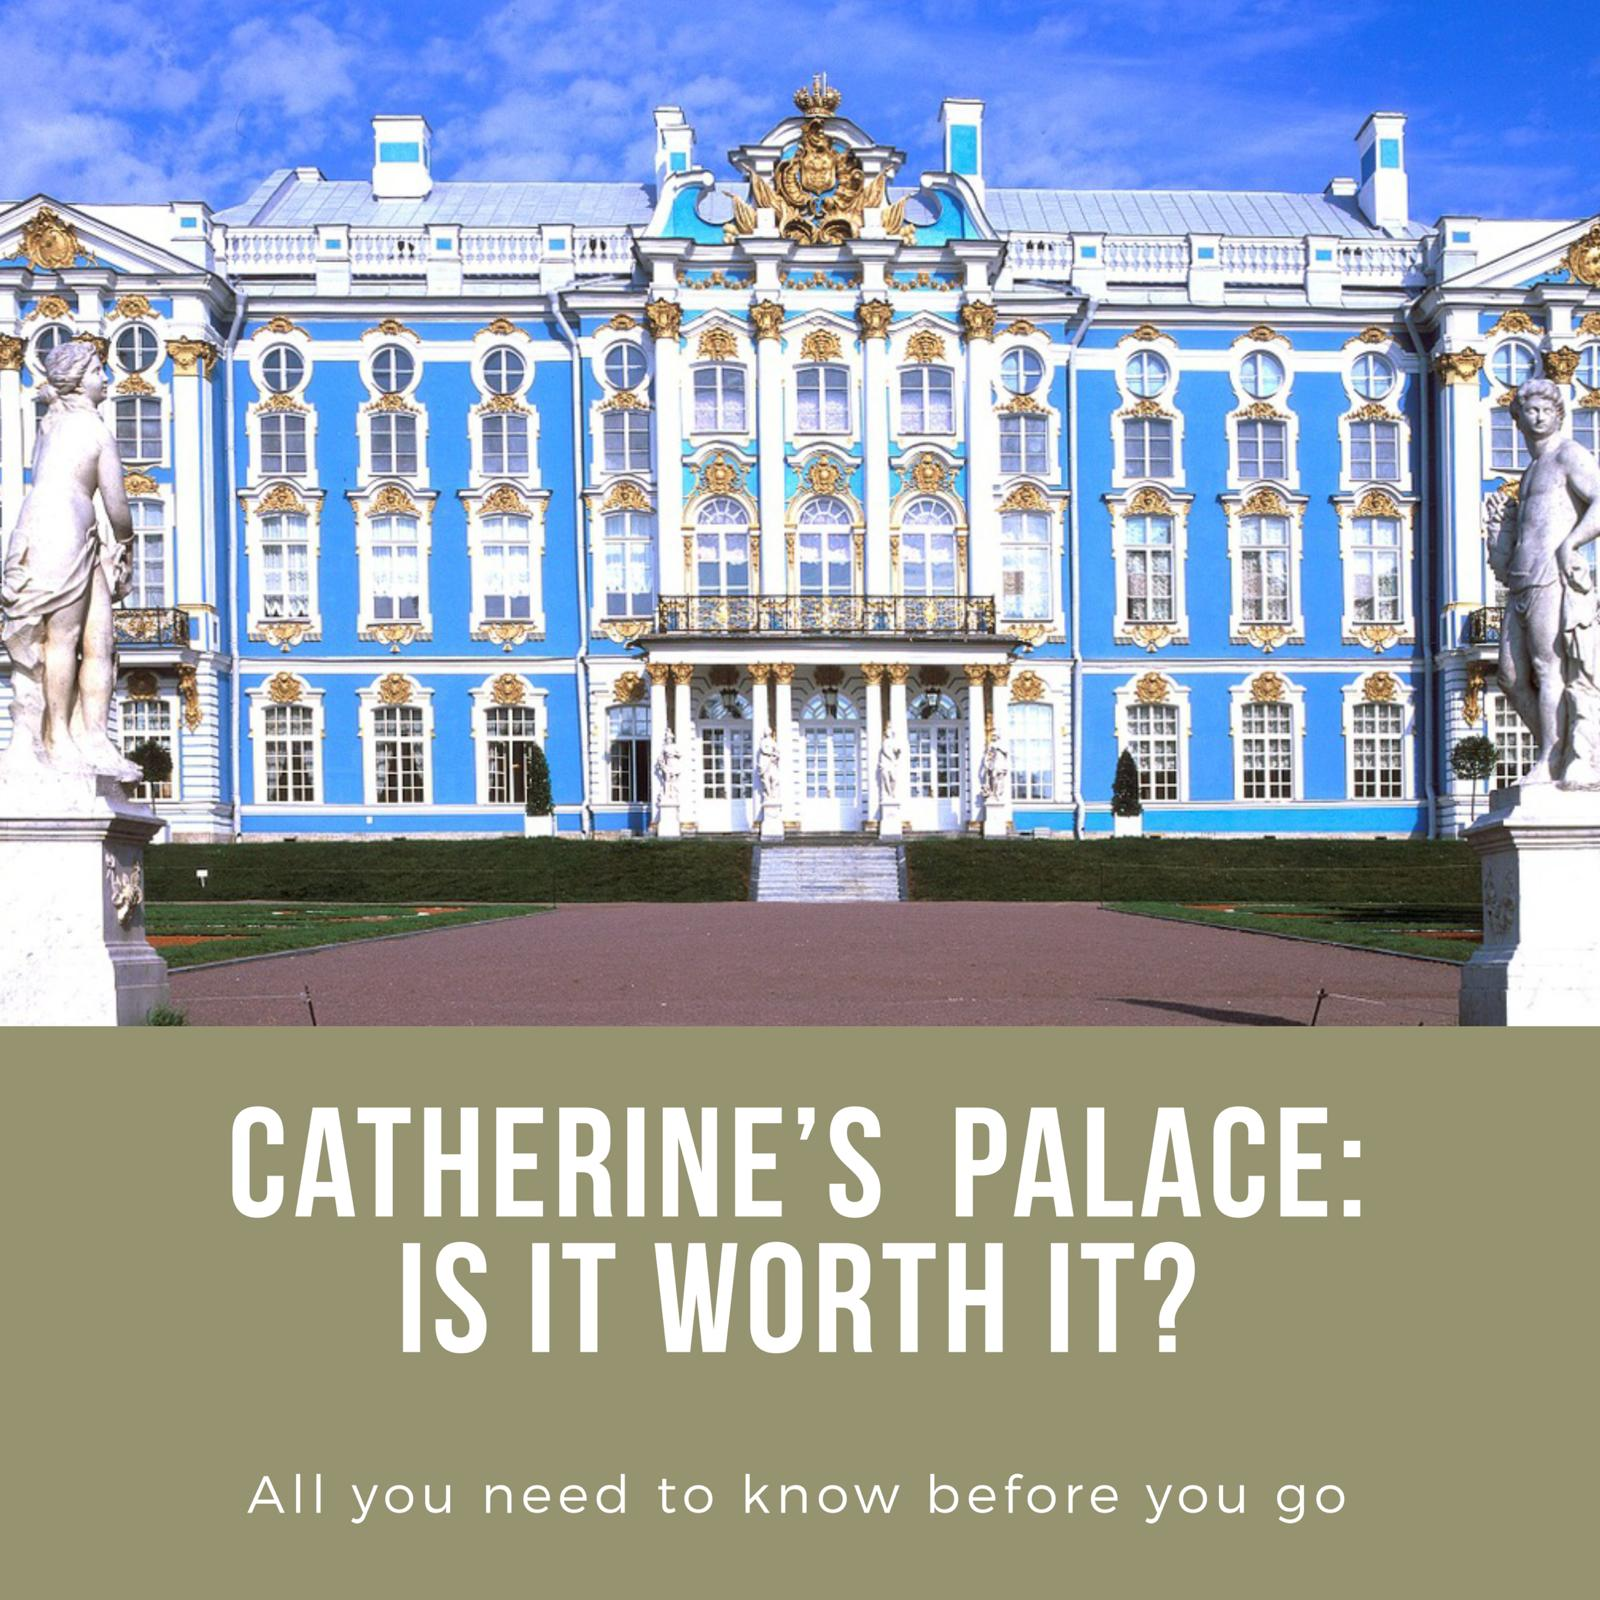 "Image with the words: ""Catherine's Palace: Is it Worth It? All you need to know before you go"" at the bottom and a photo of the main entrance to Catherine Palace above."